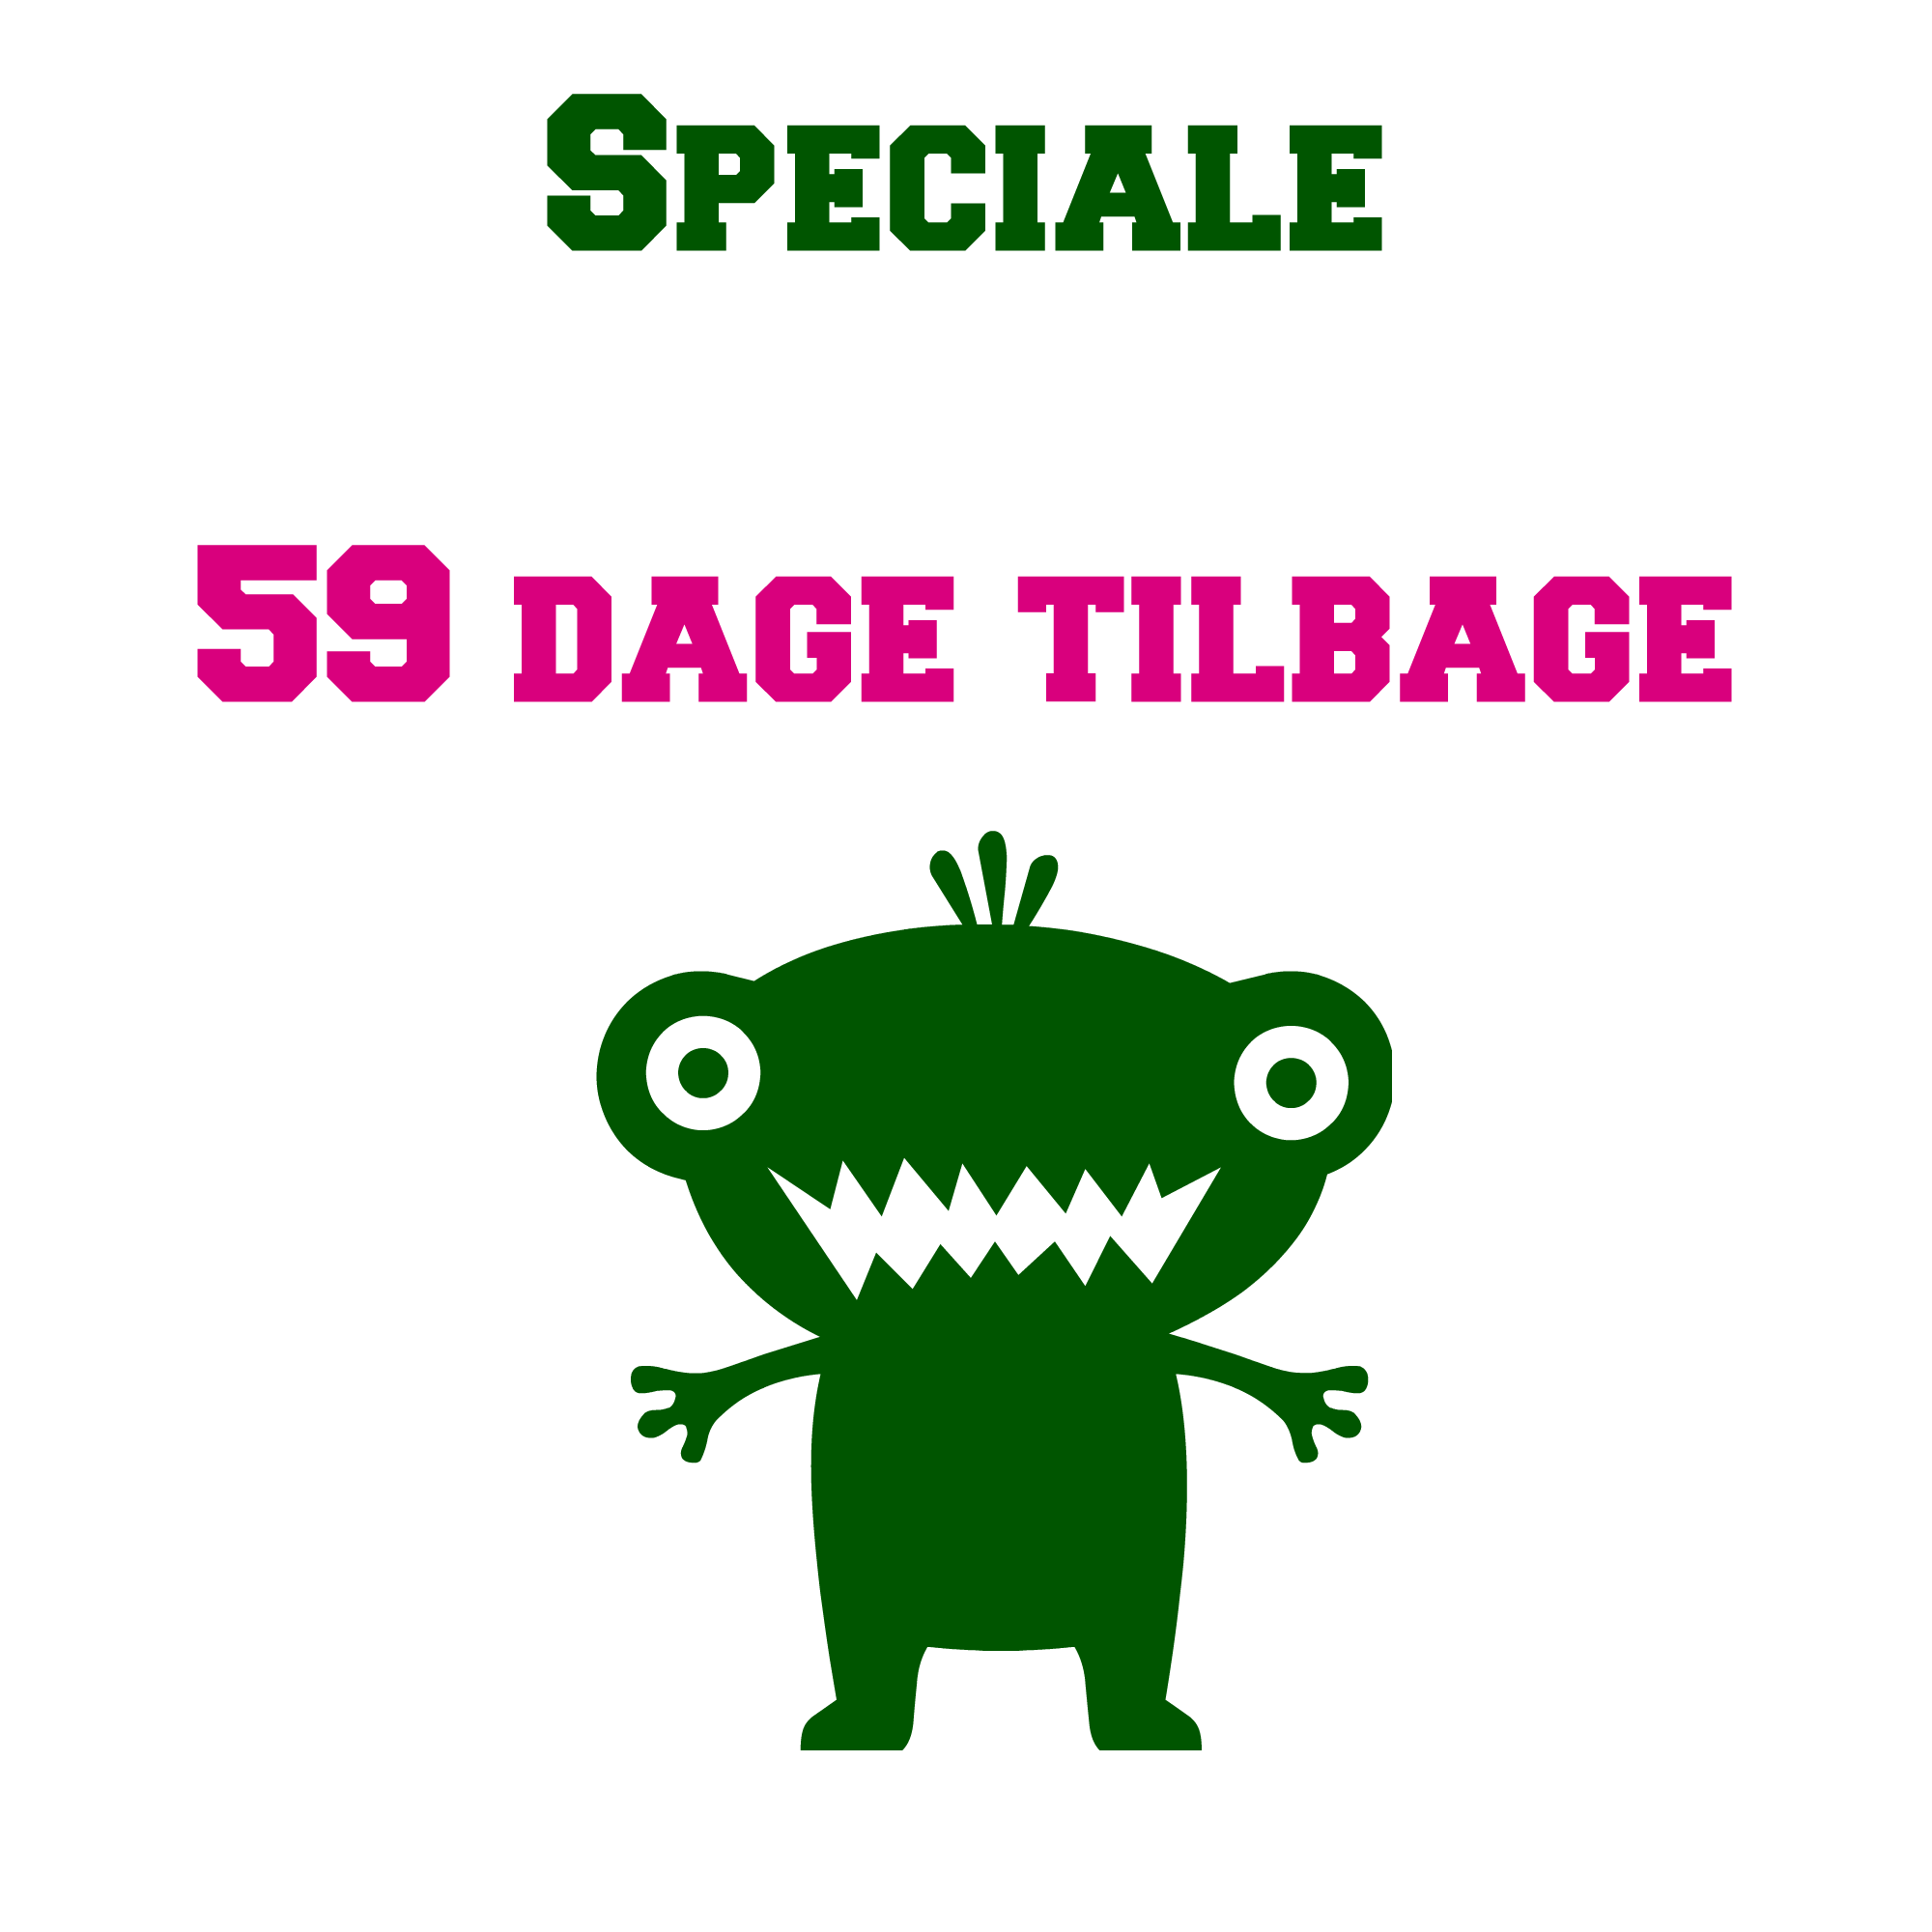 Speciale 59 dage